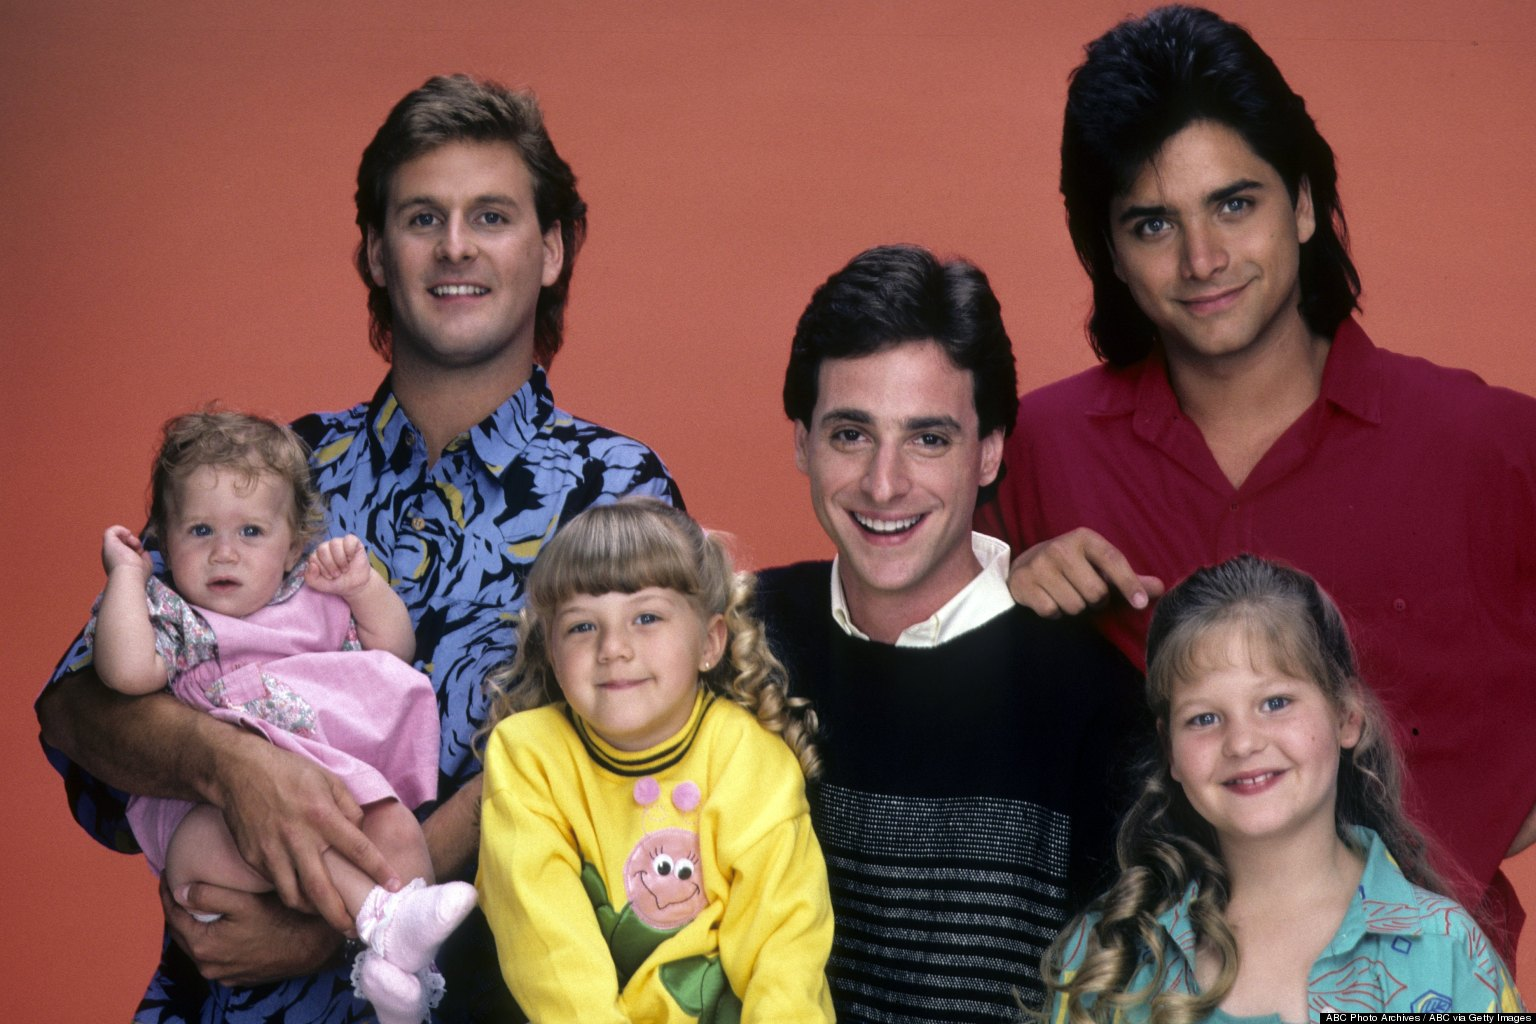 Full house family pictures